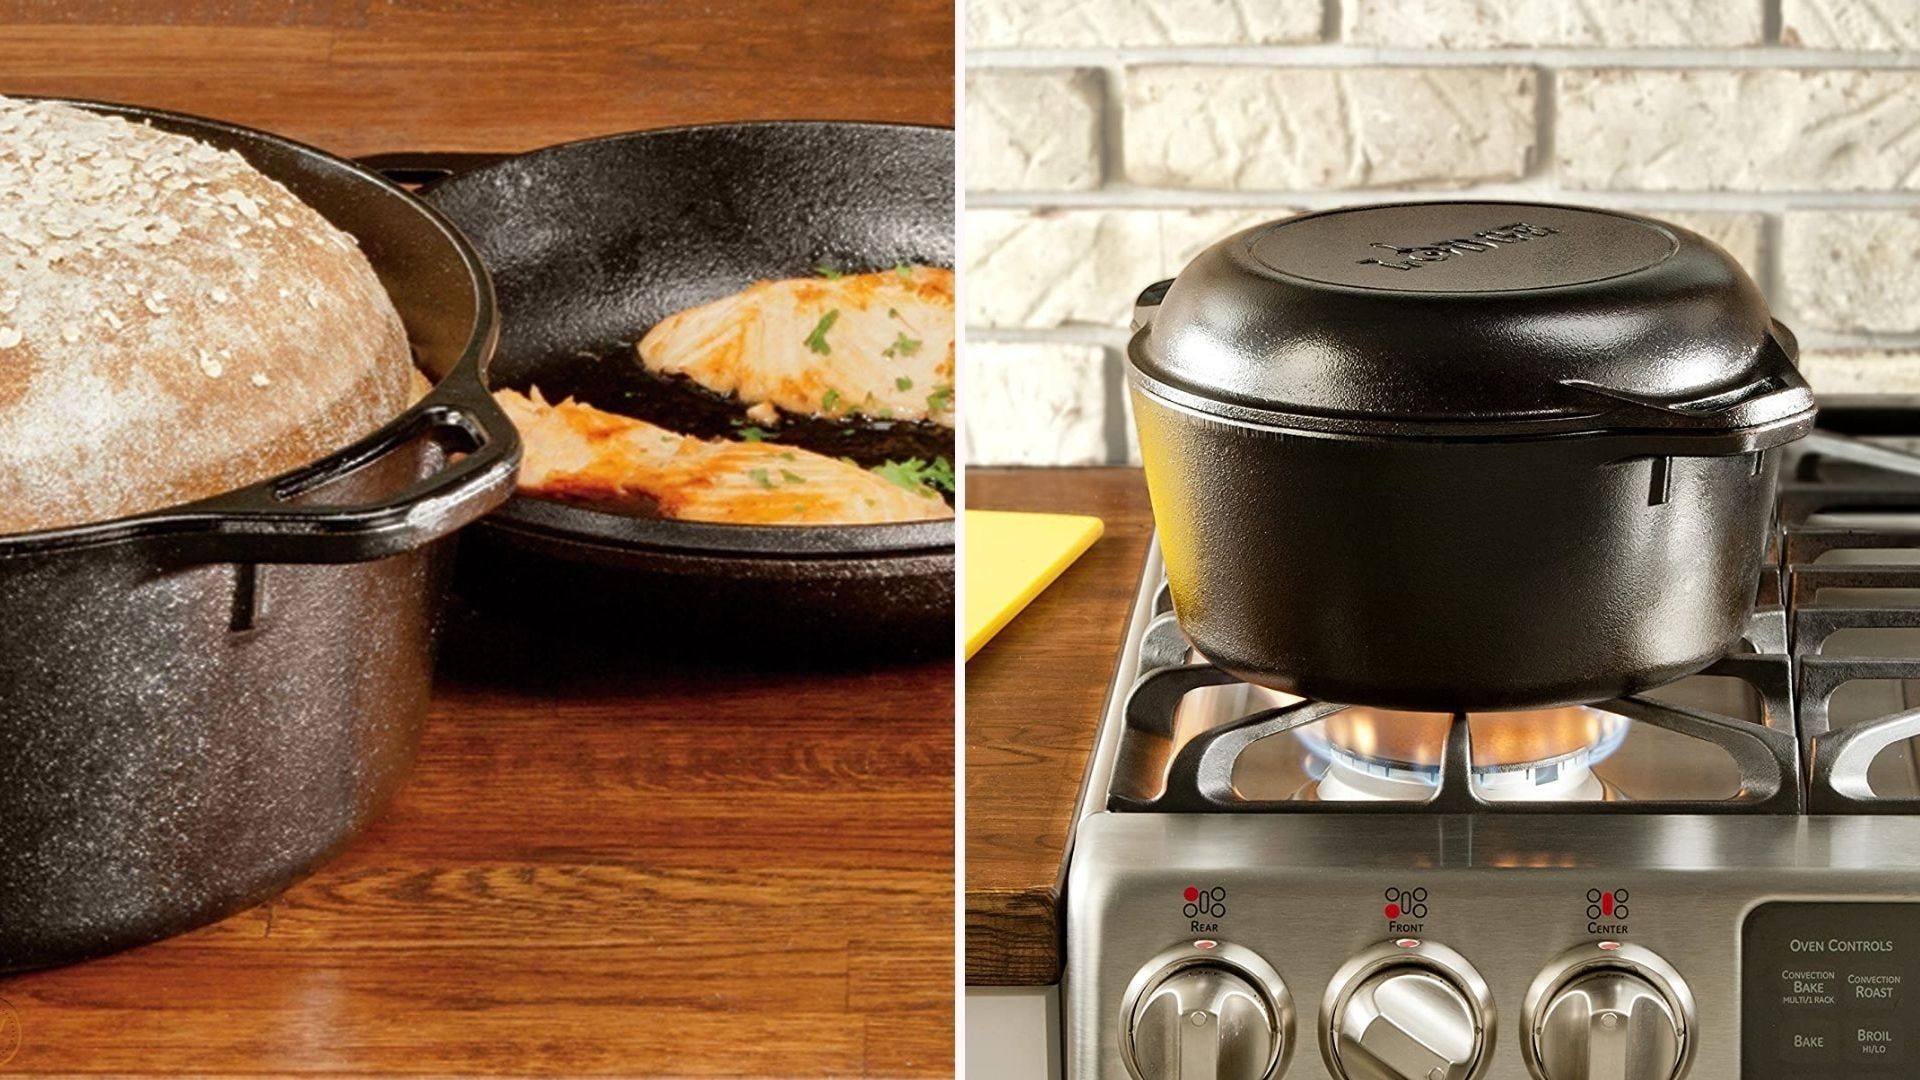 A cast iron Dutch oven with a loaf of bread in it; the same Dutch oven closed and sitting on a stove